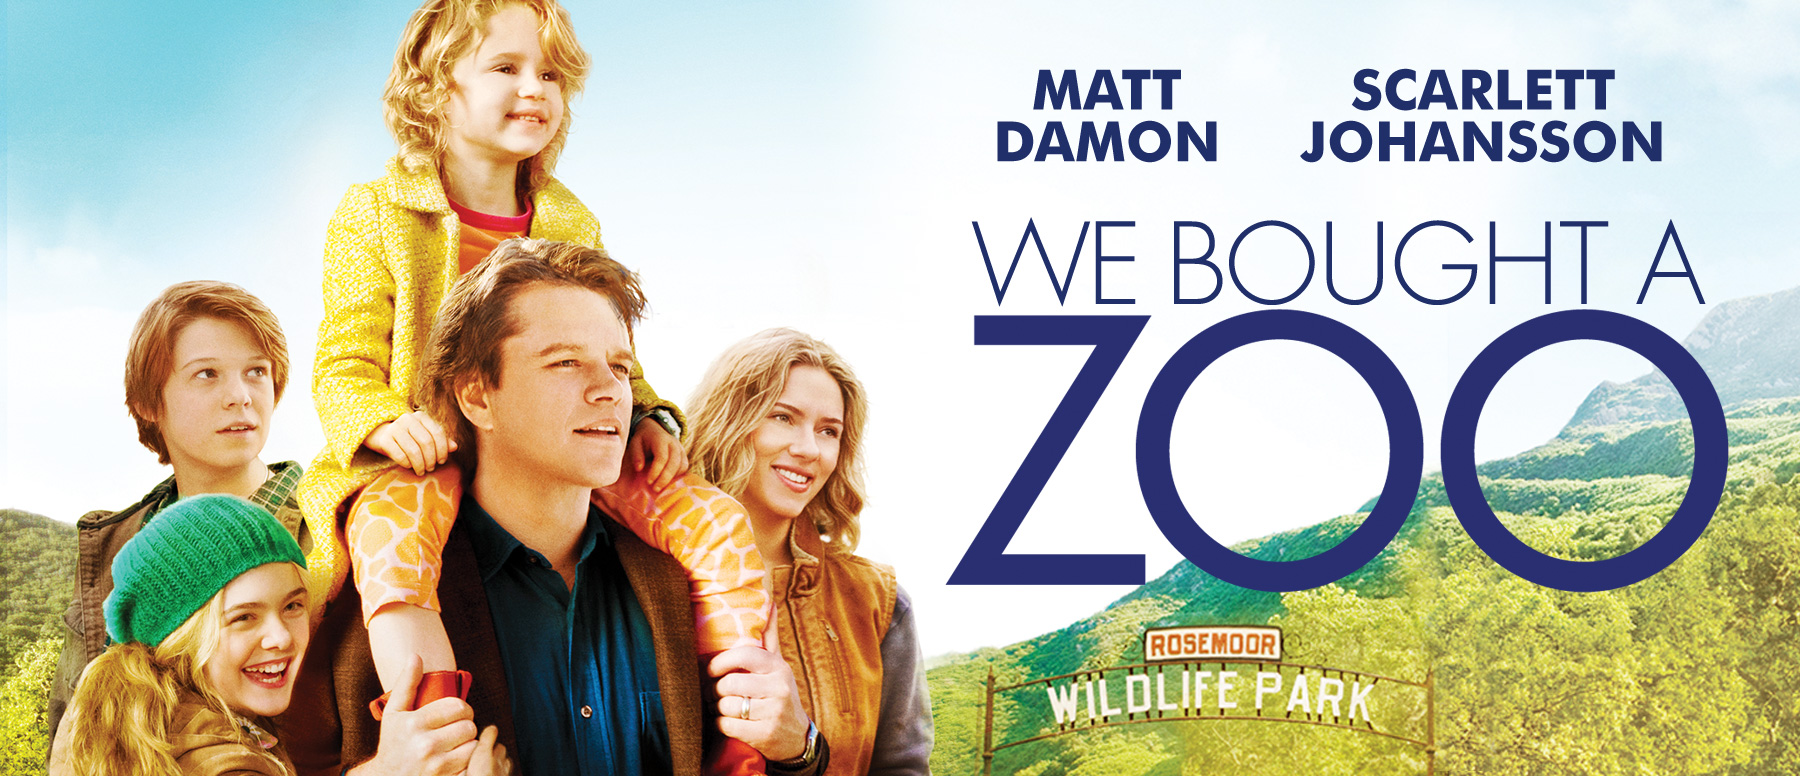 Image for the movie We Bought a Zoo